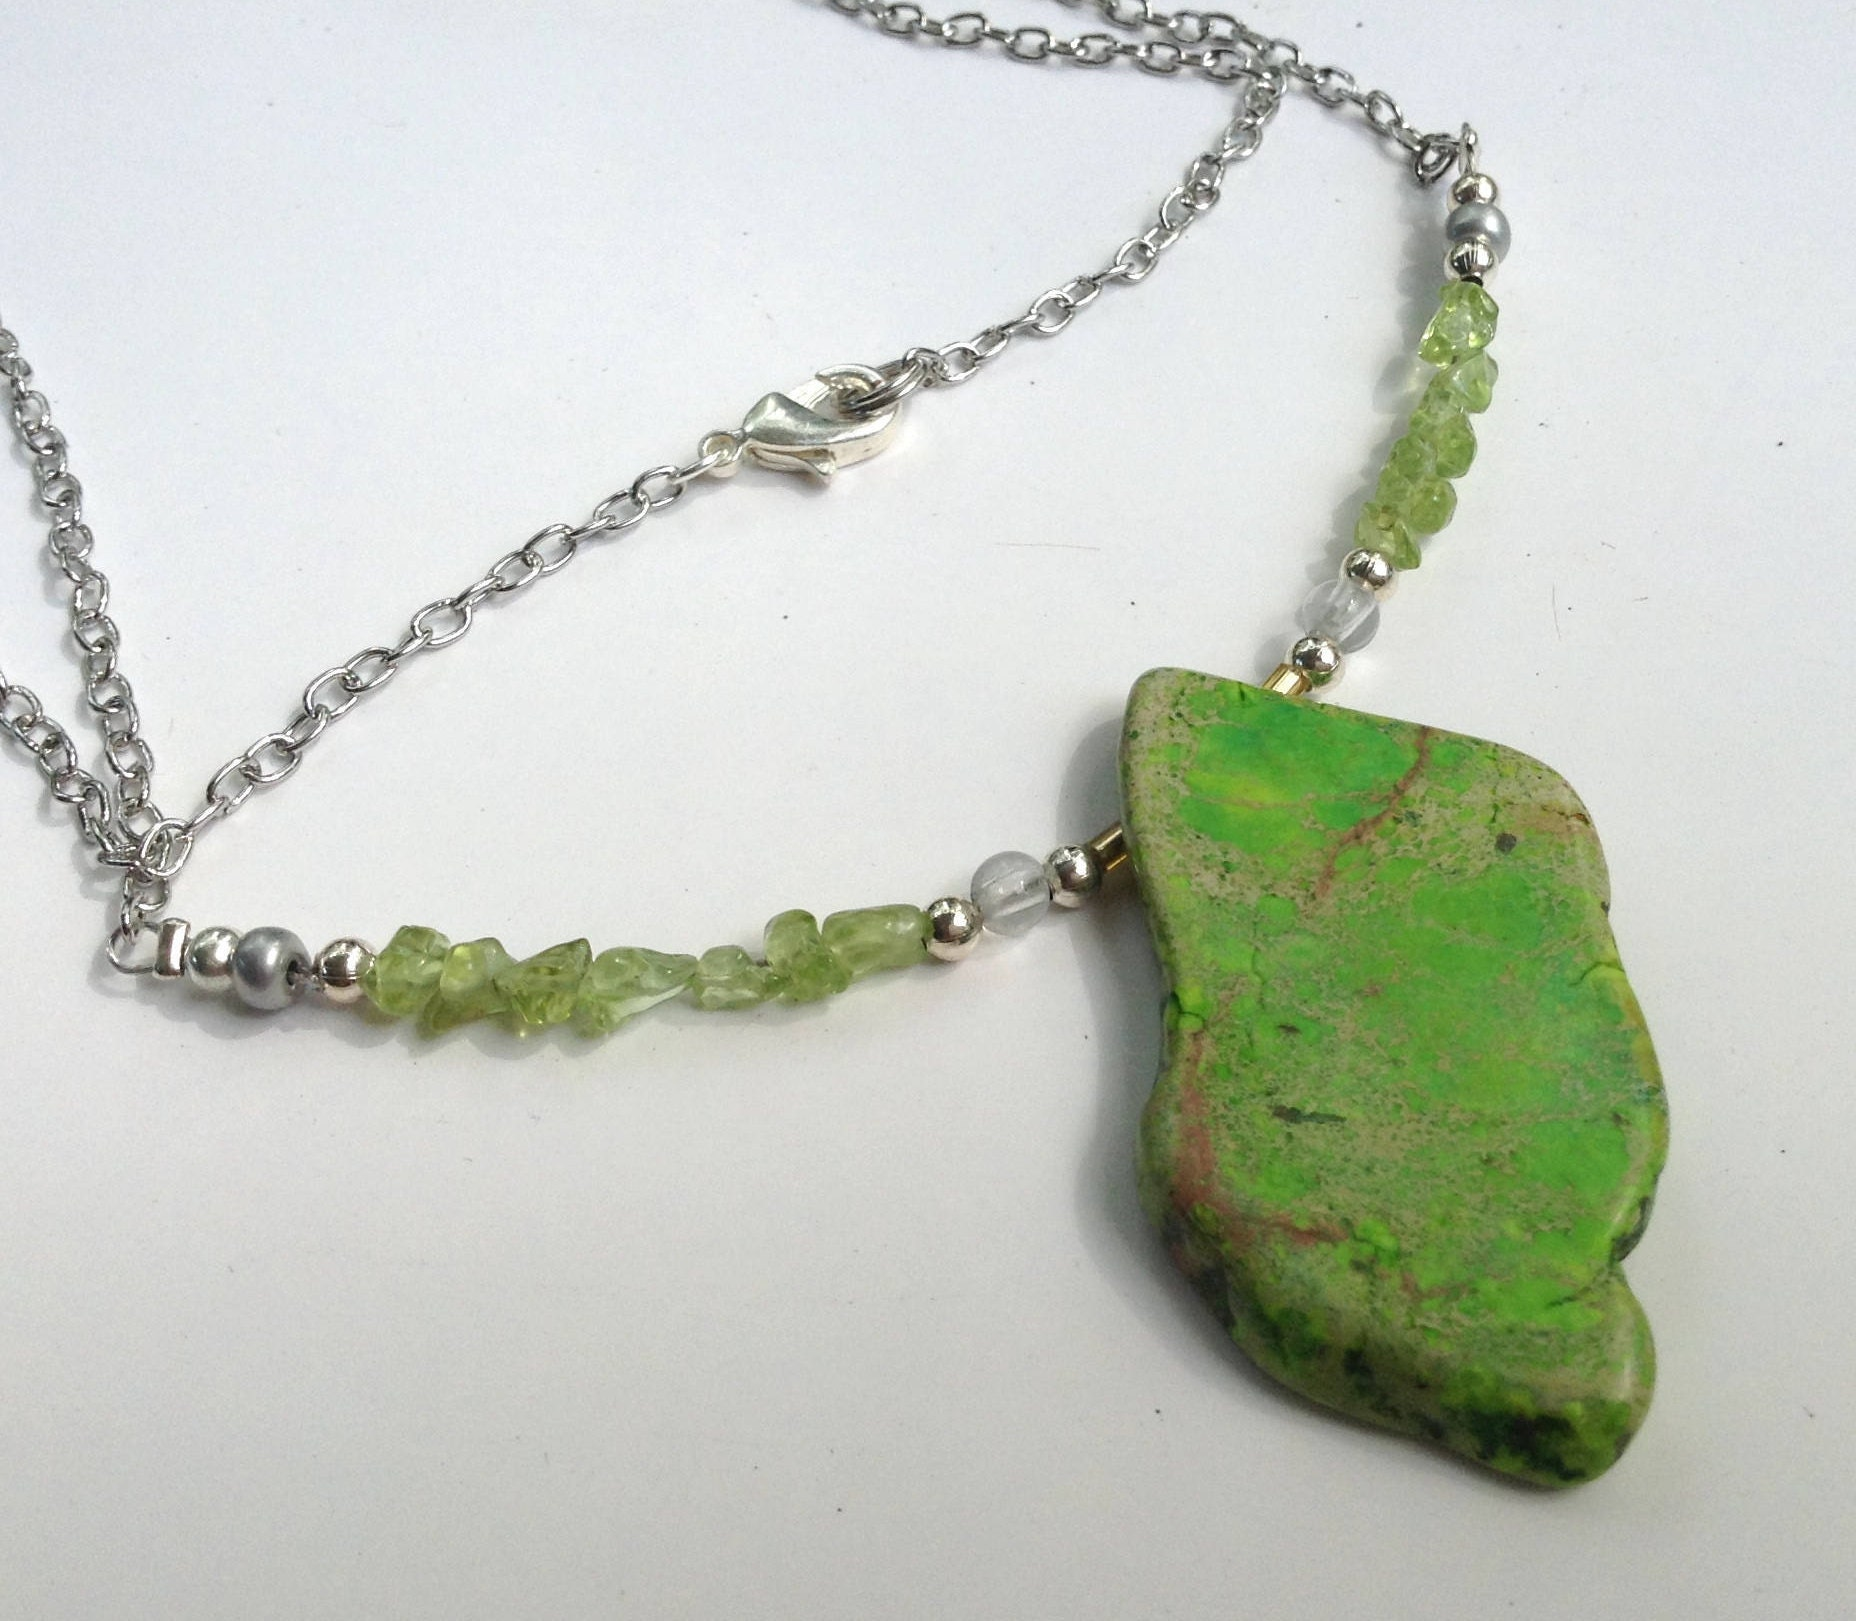 Wonderful Bright Green Stone Necklace; with Natural Raw Peridot and Silver  NT15